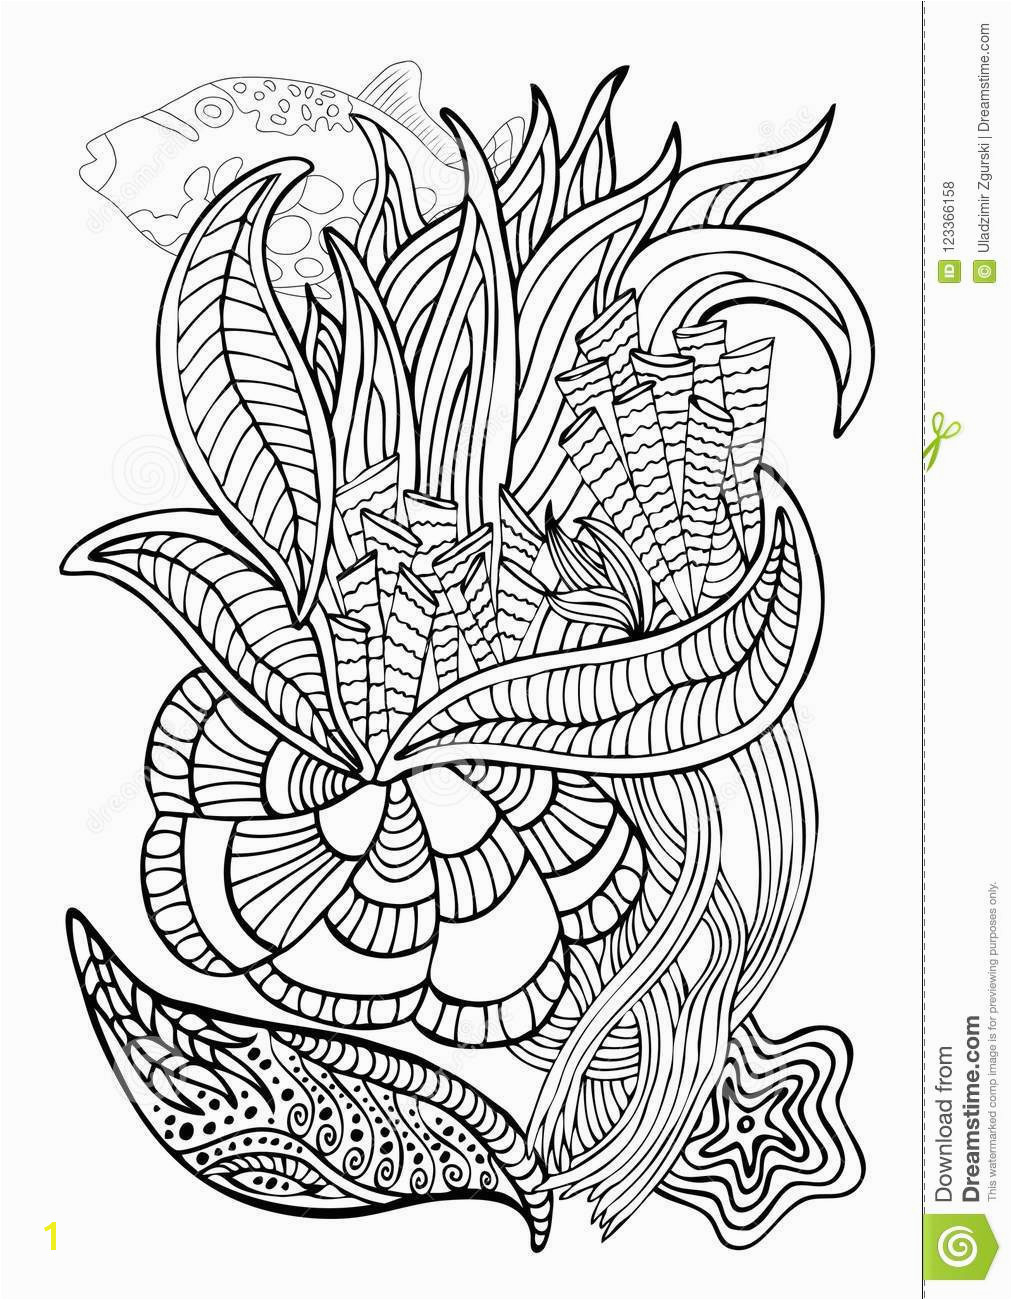 Hand drawn page in zendoodle style for adult coloring book Abstract marine and floral motifs with coral fishes seashells and seaweeds